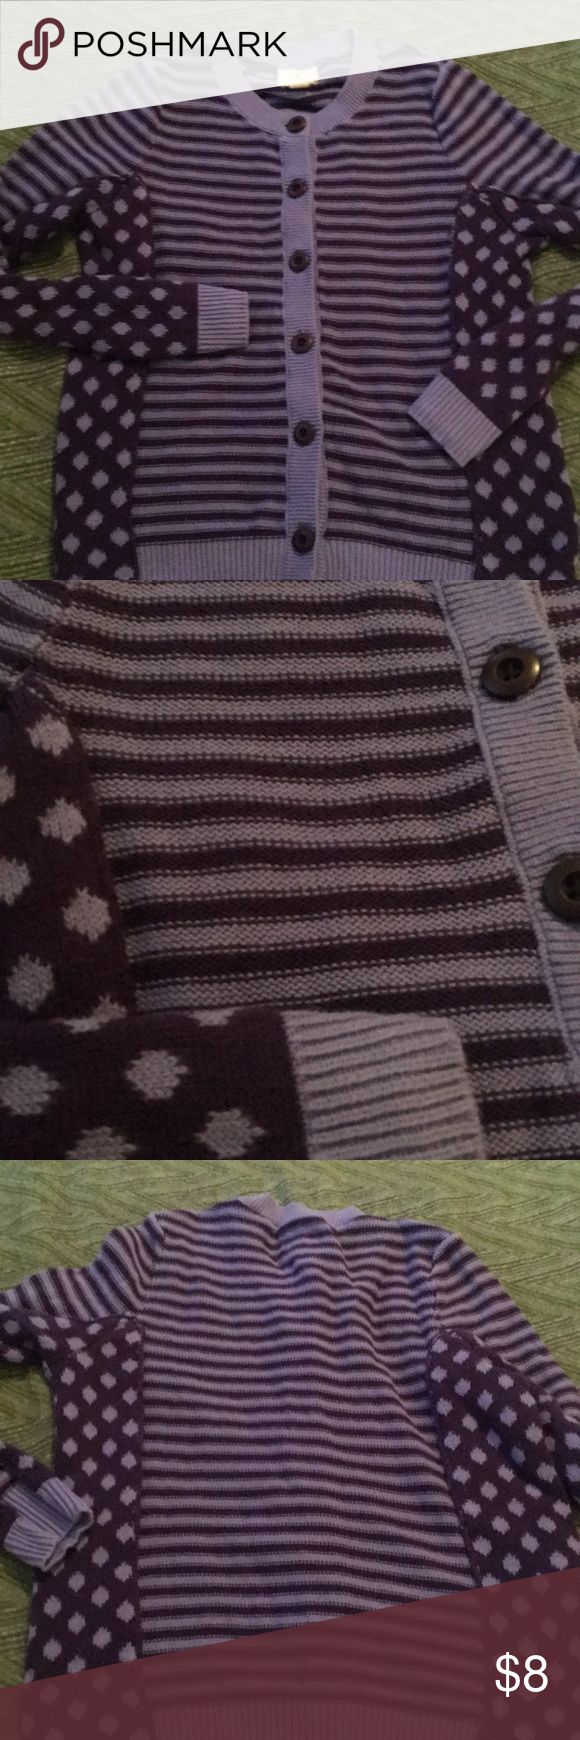 Lands end kids sweater size S 7-8 Girls sweater with two tone purple colors, stripe mixed with polka dots that buttons up front.  EUC Lands' End Shirts & Tops Sweaters